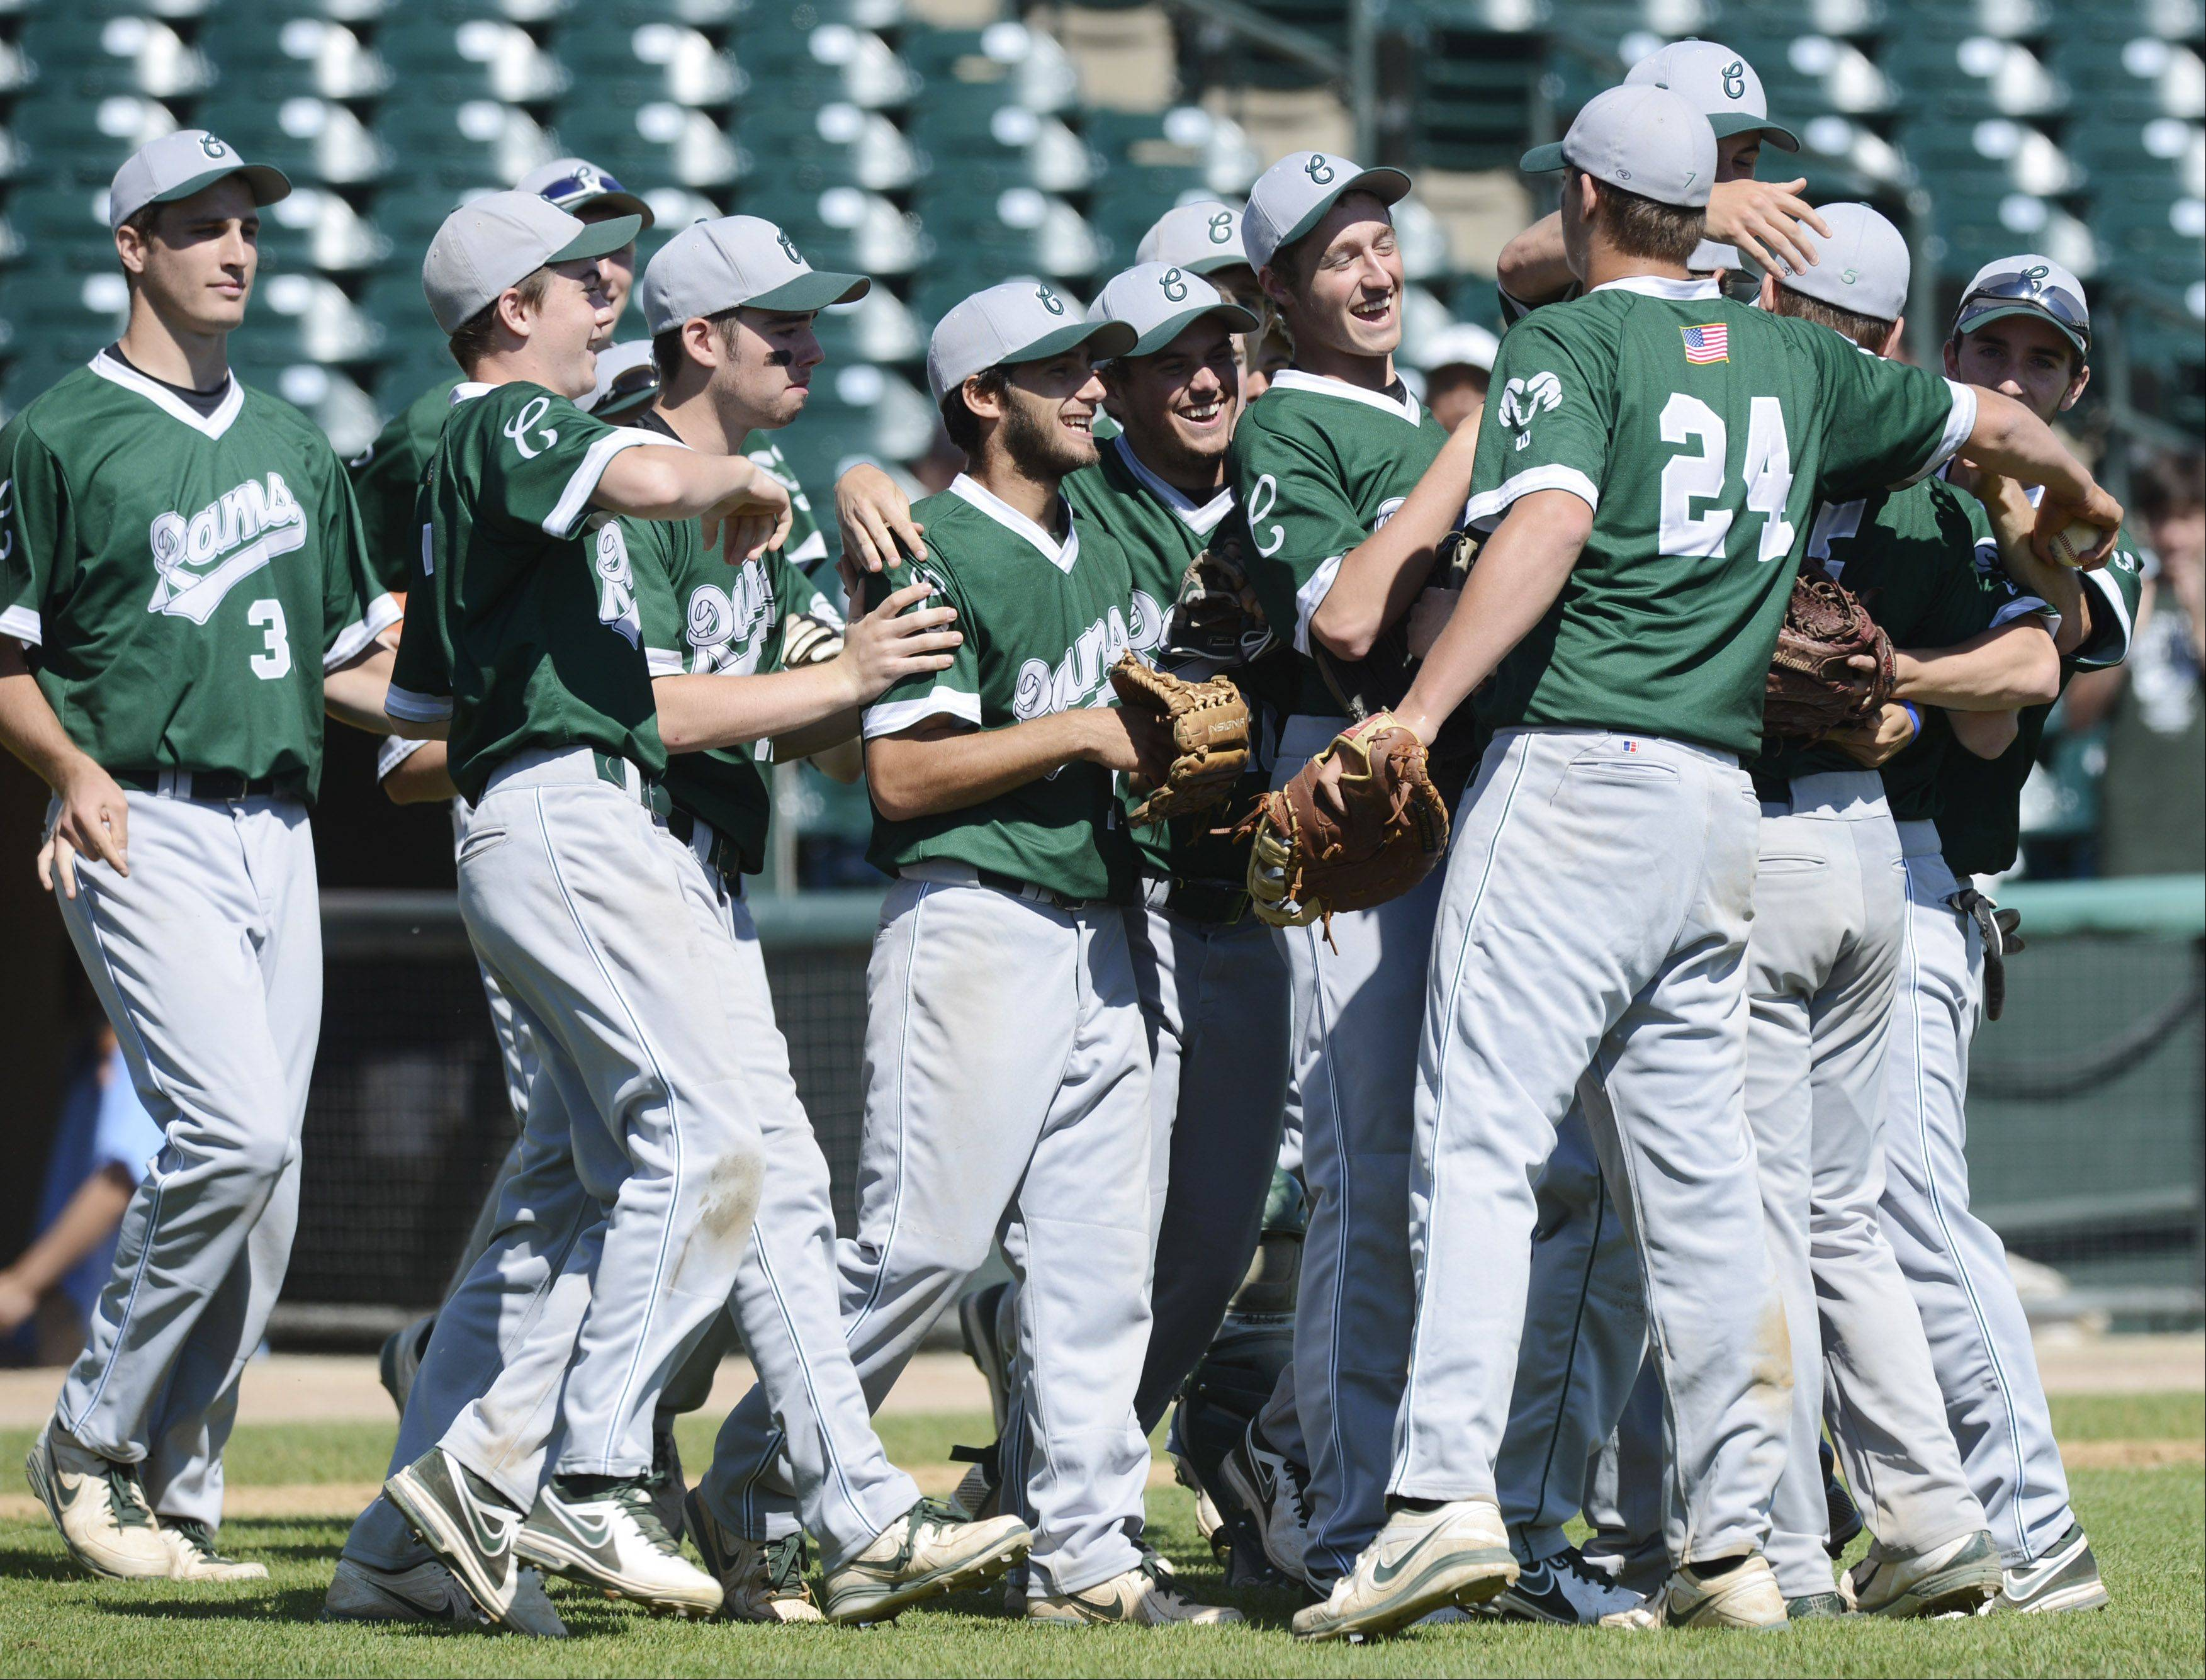 Grayslake Central players celebrate after their team beat Mt. Vernon 1-0 during the Class 3A state baseball third-place game at Silver Cross Field in Joliet Saturday.